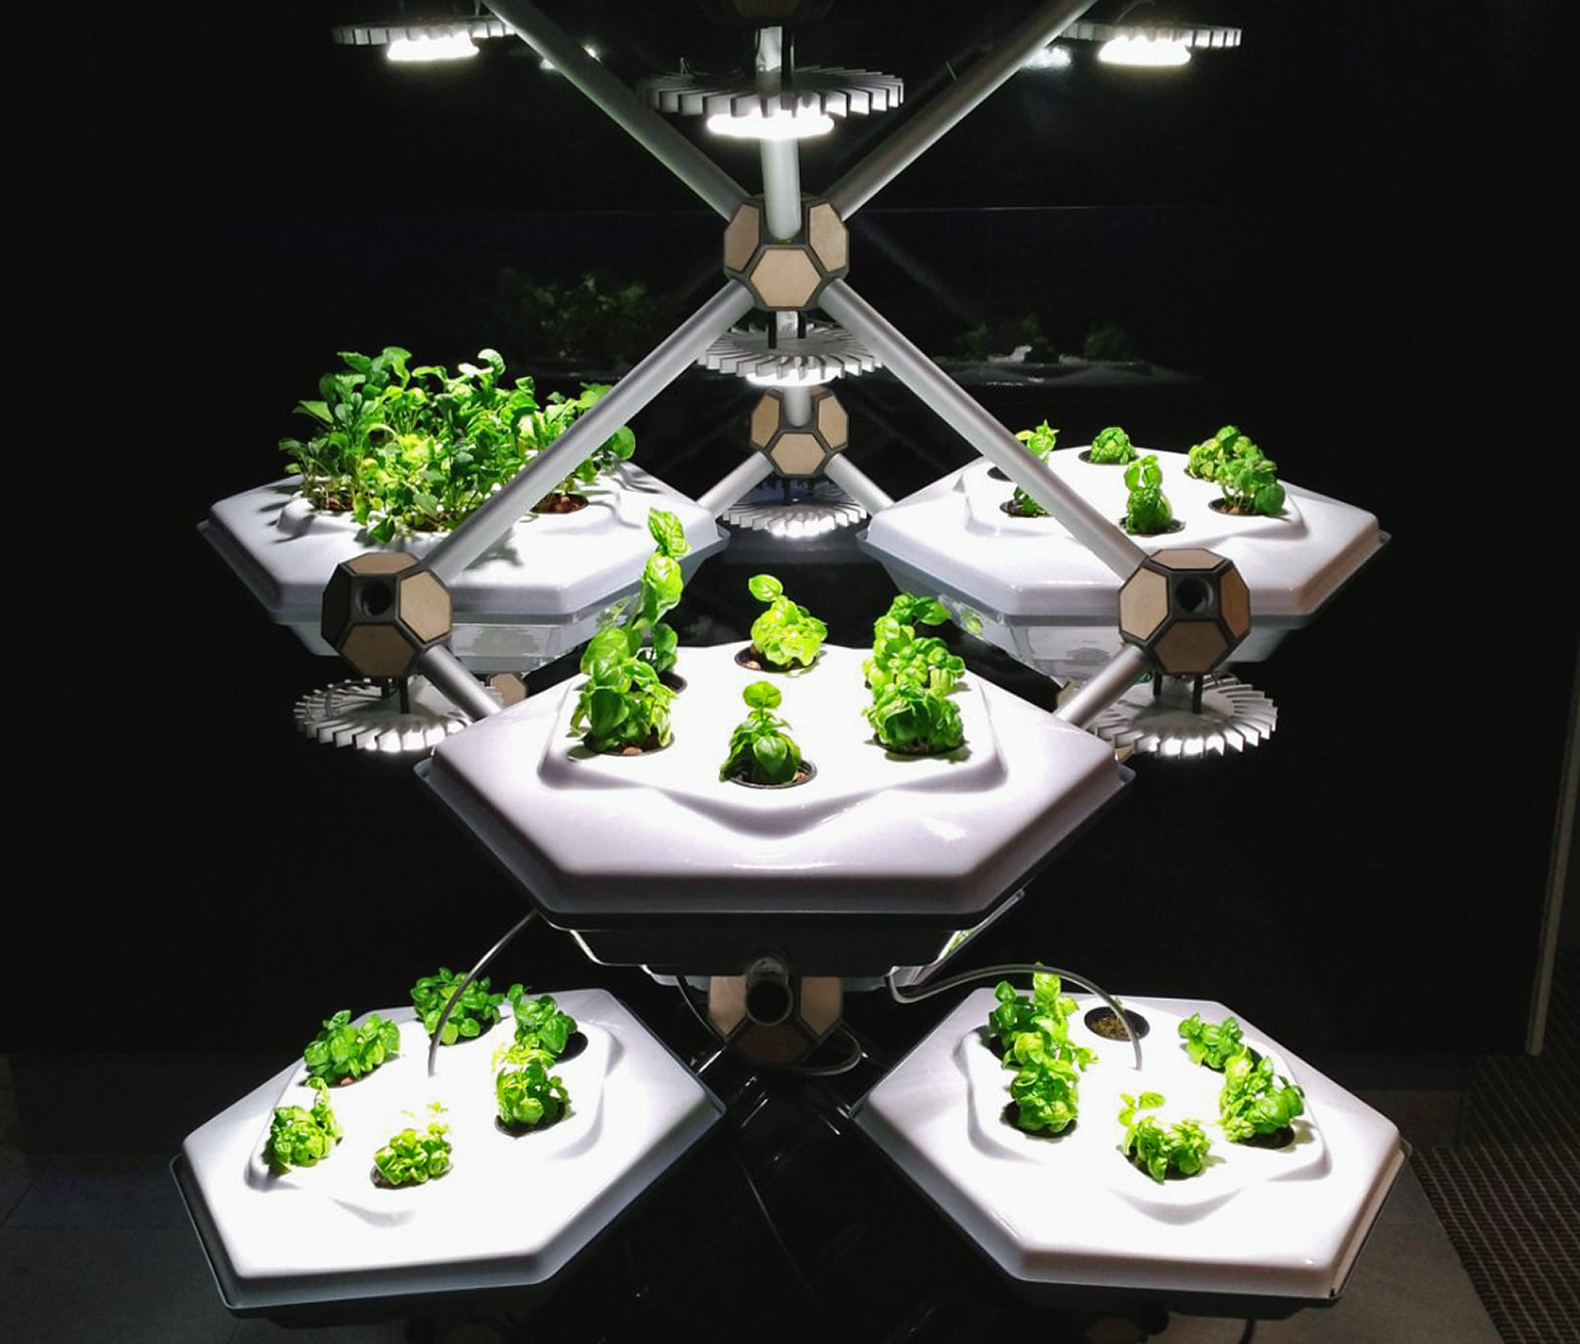 This hexagonal indoor farm grows more food in less space with 90% less water